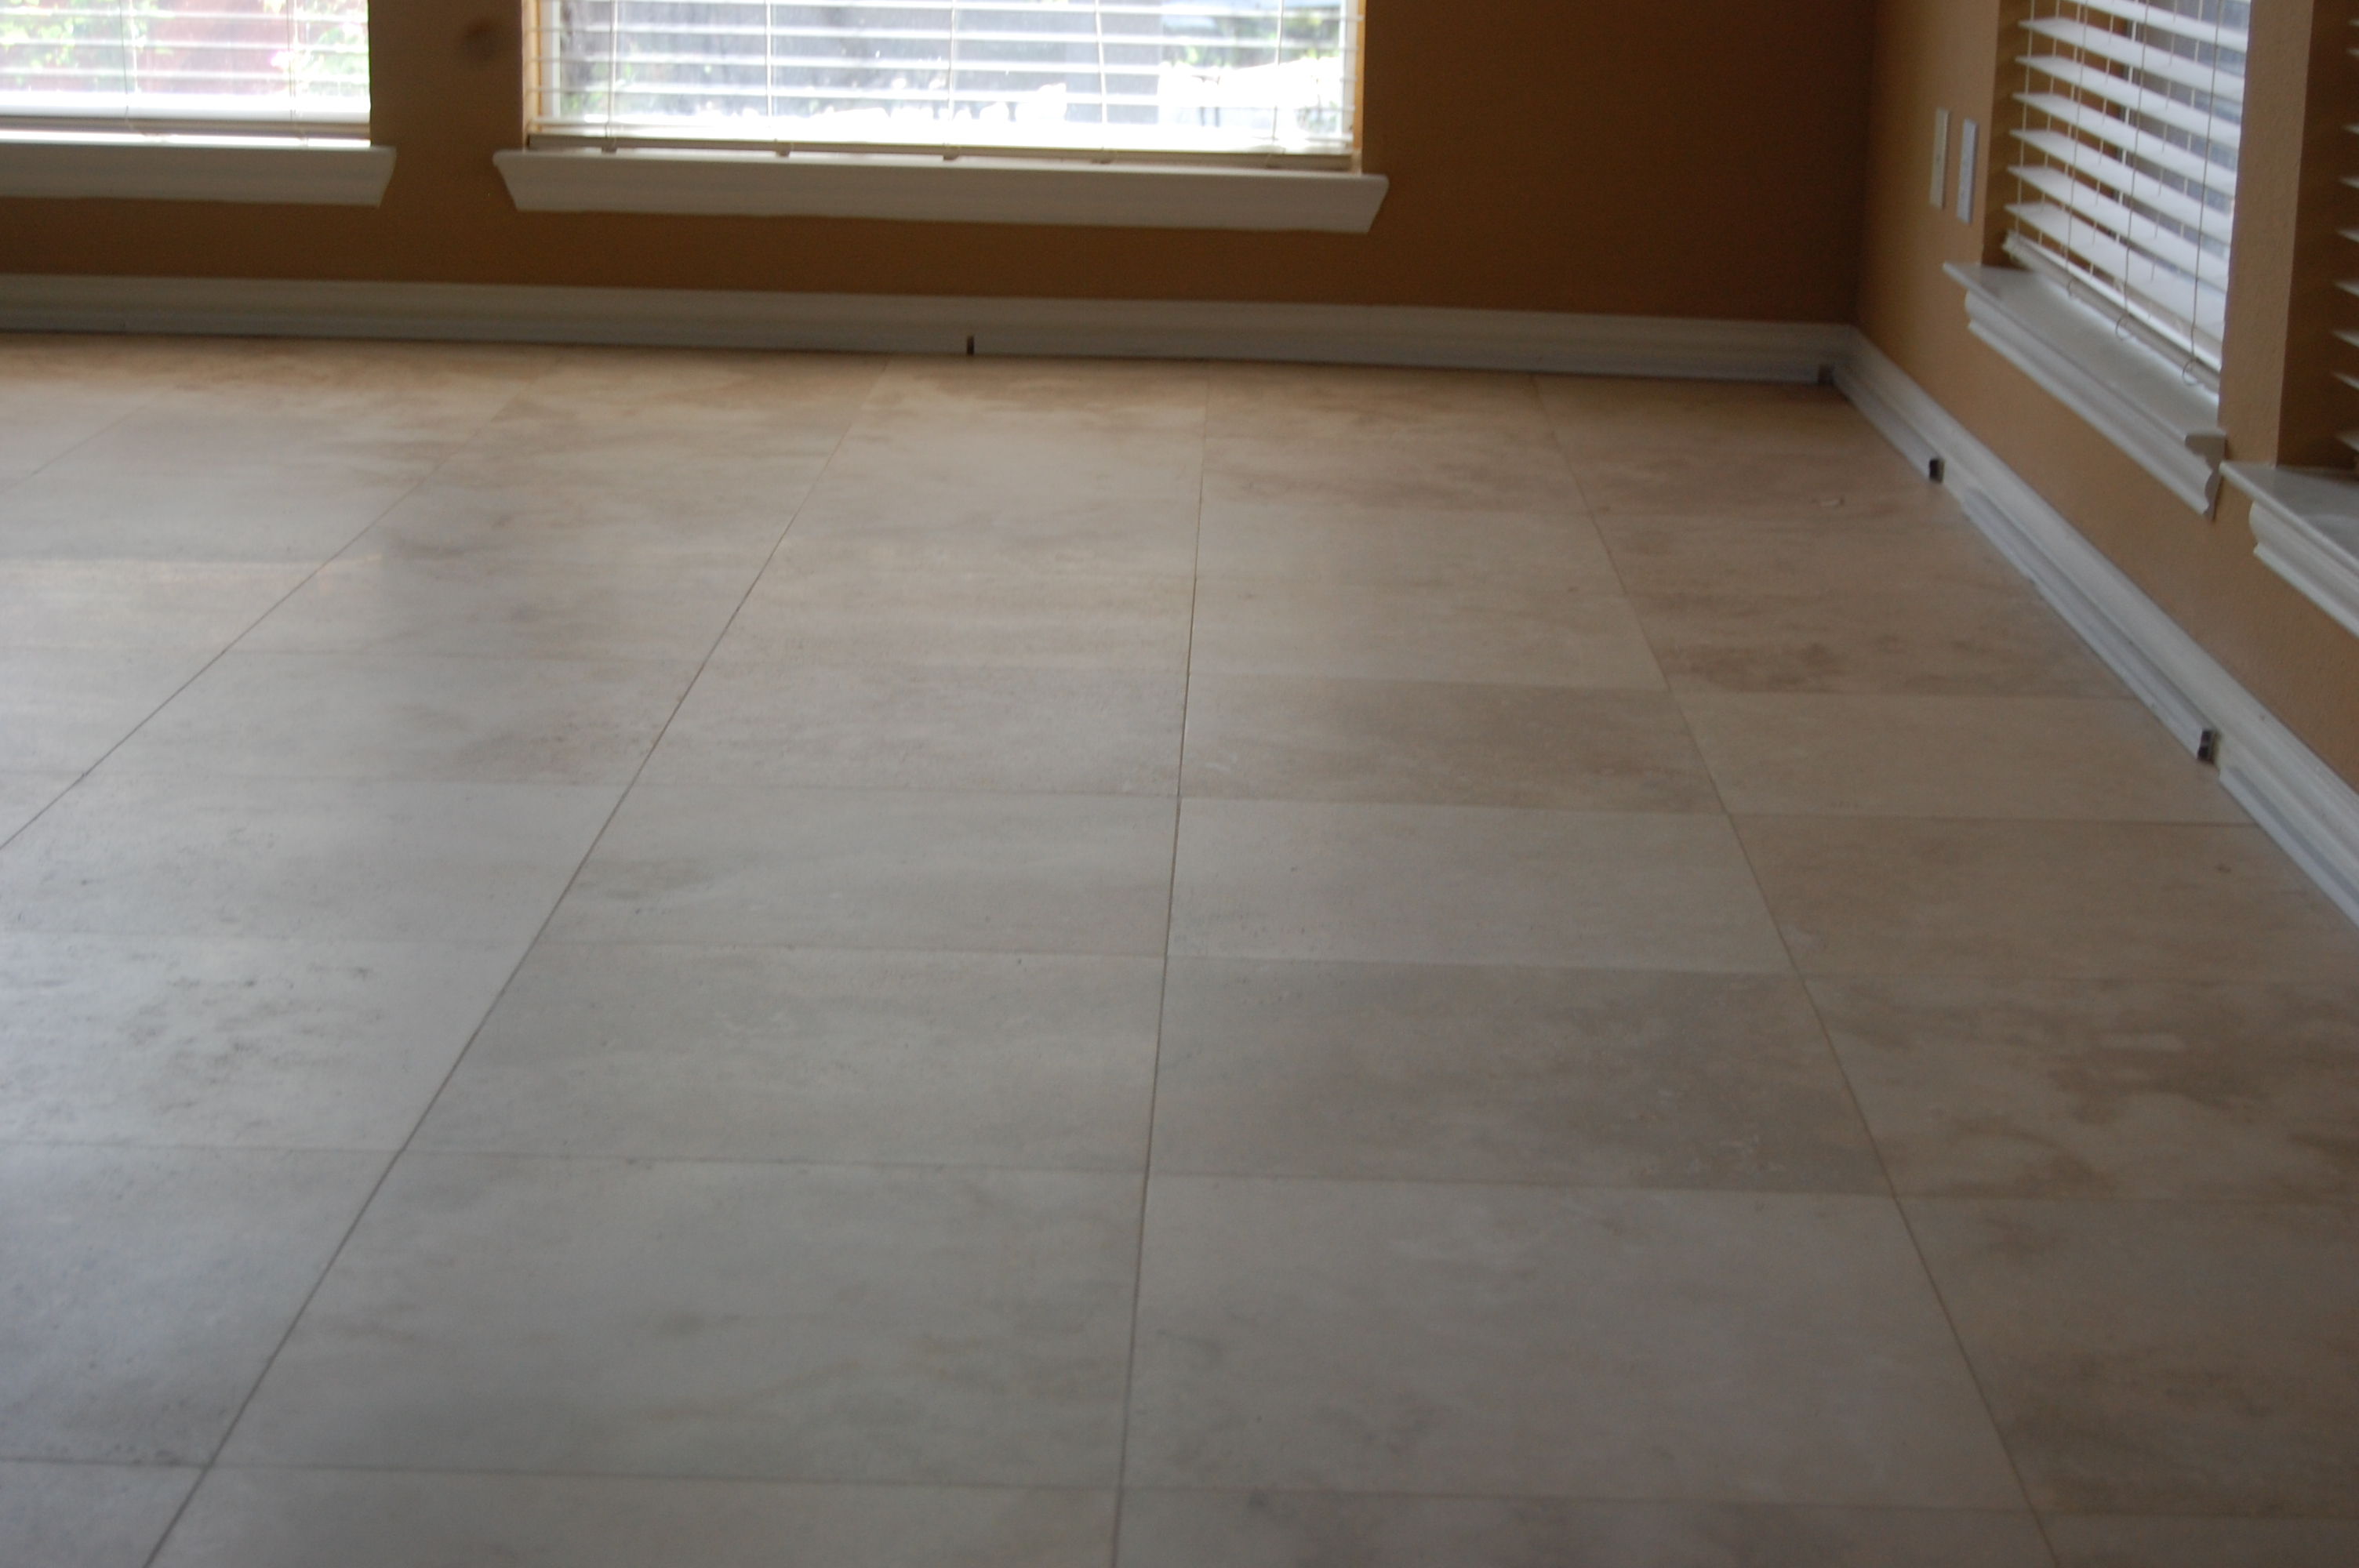 travertine lippage removed in Dallas, TX